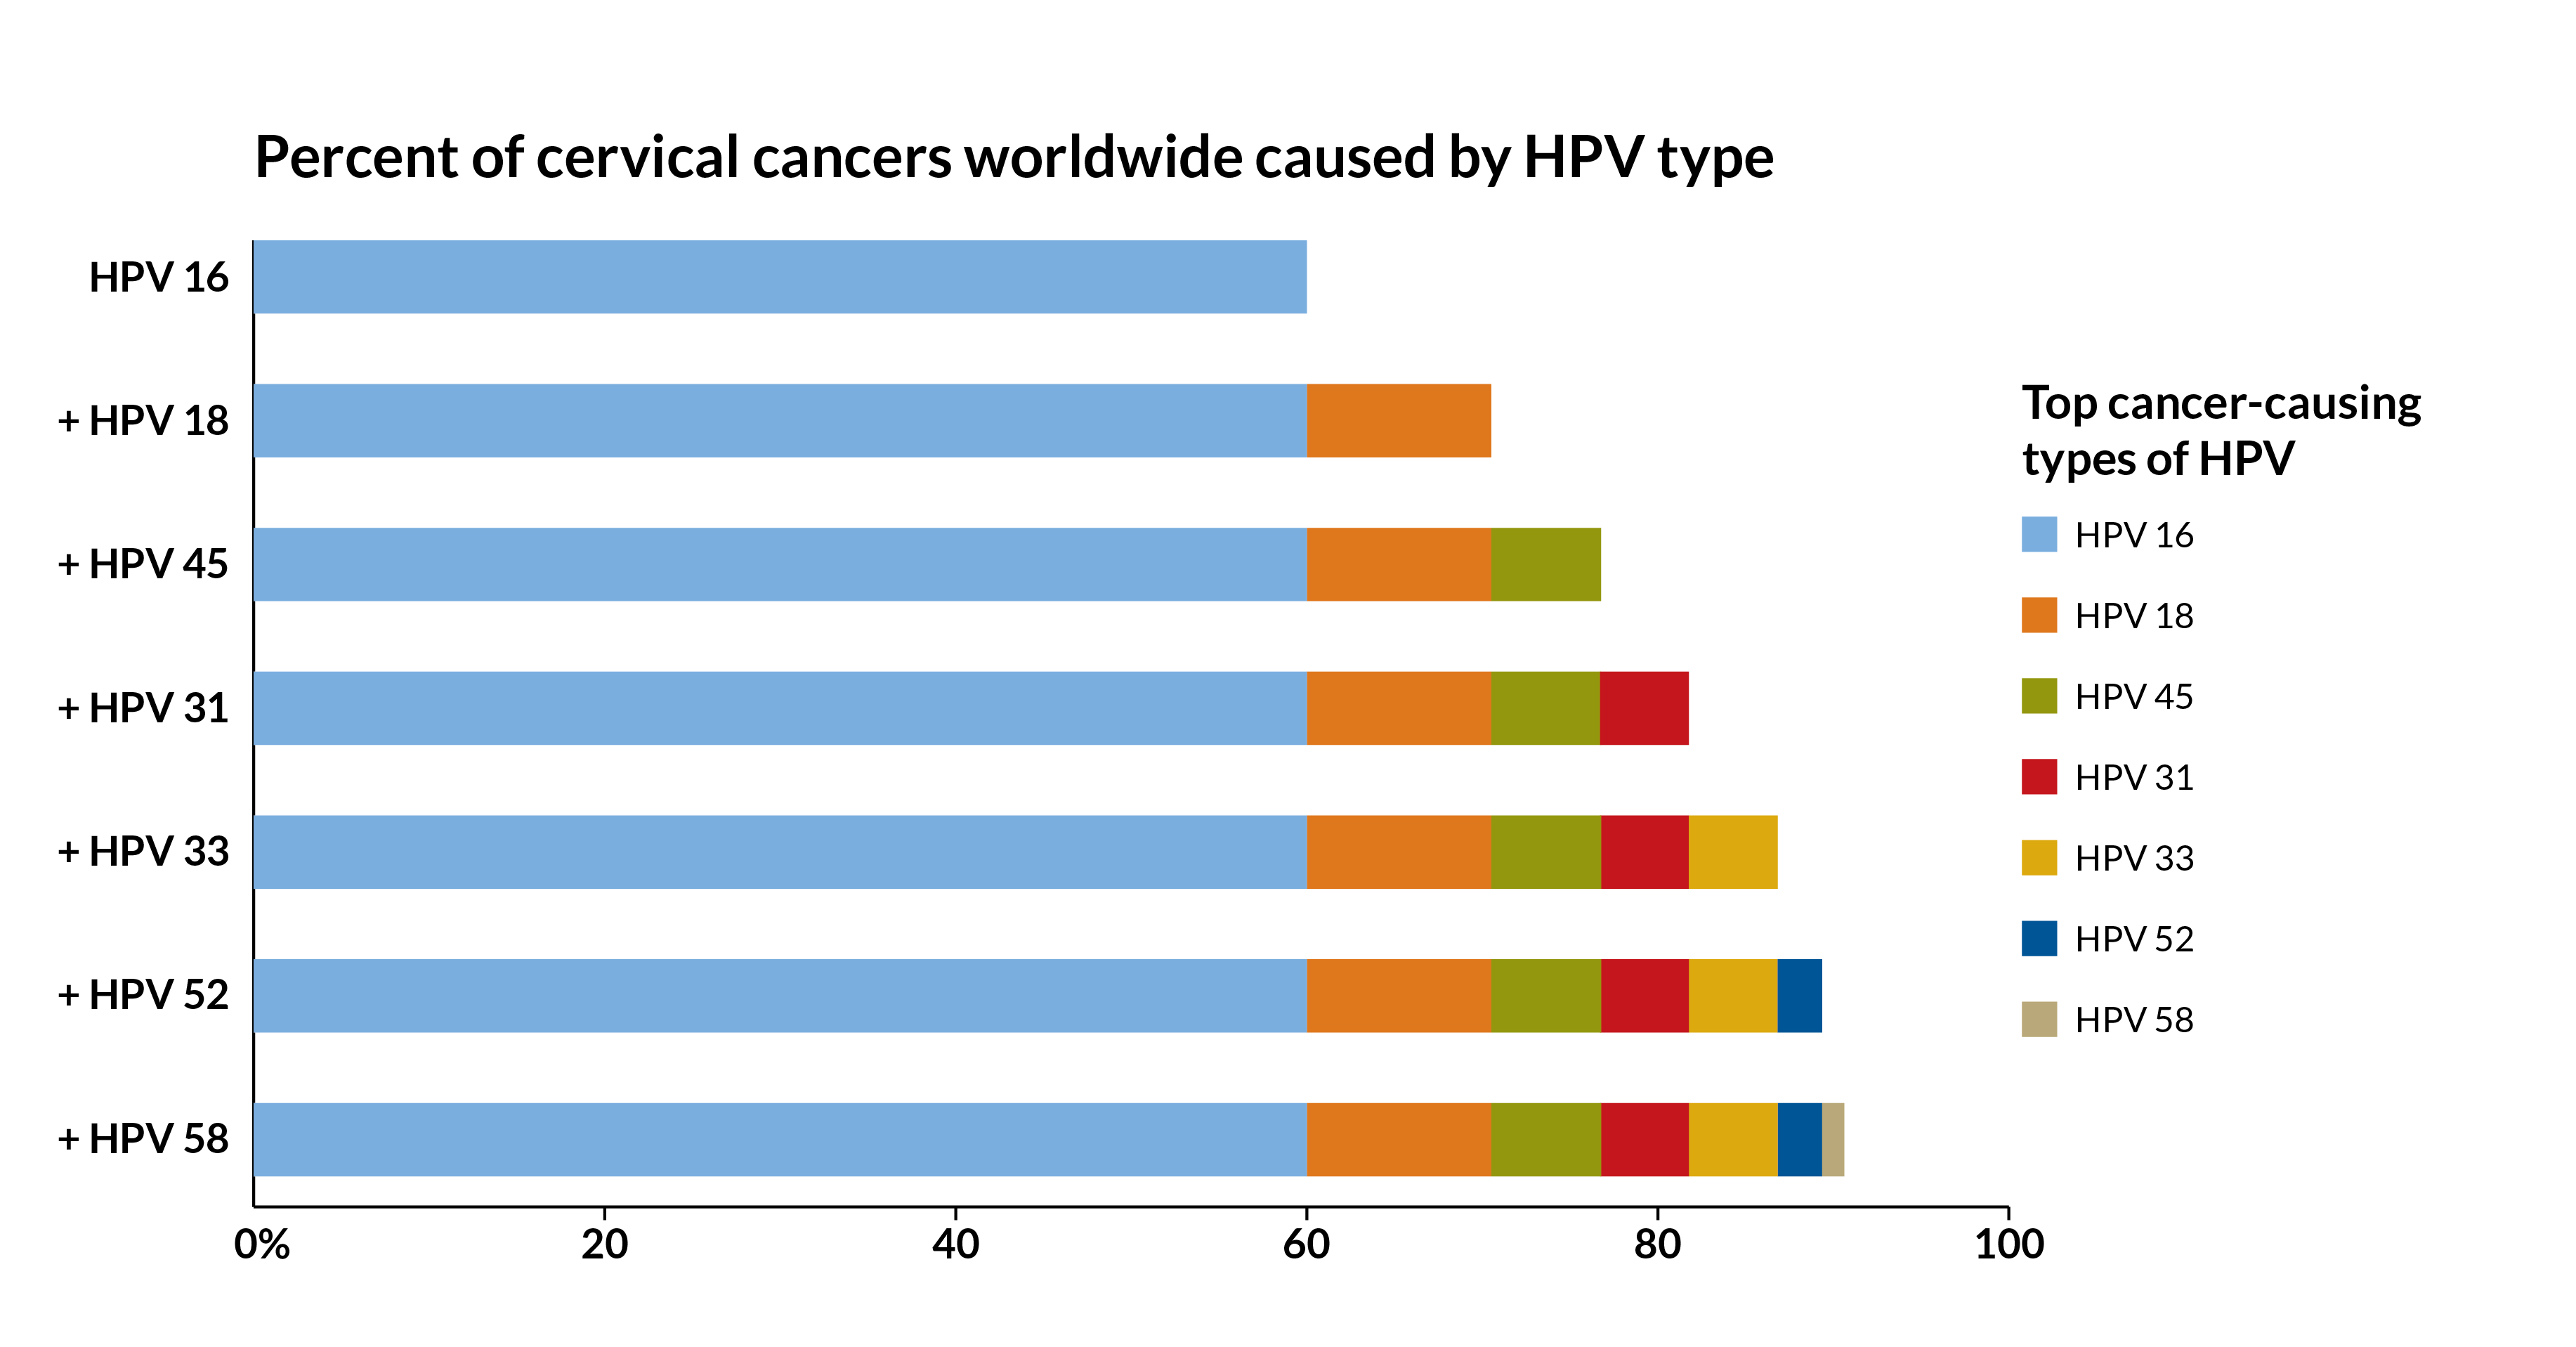 hpv cancer type